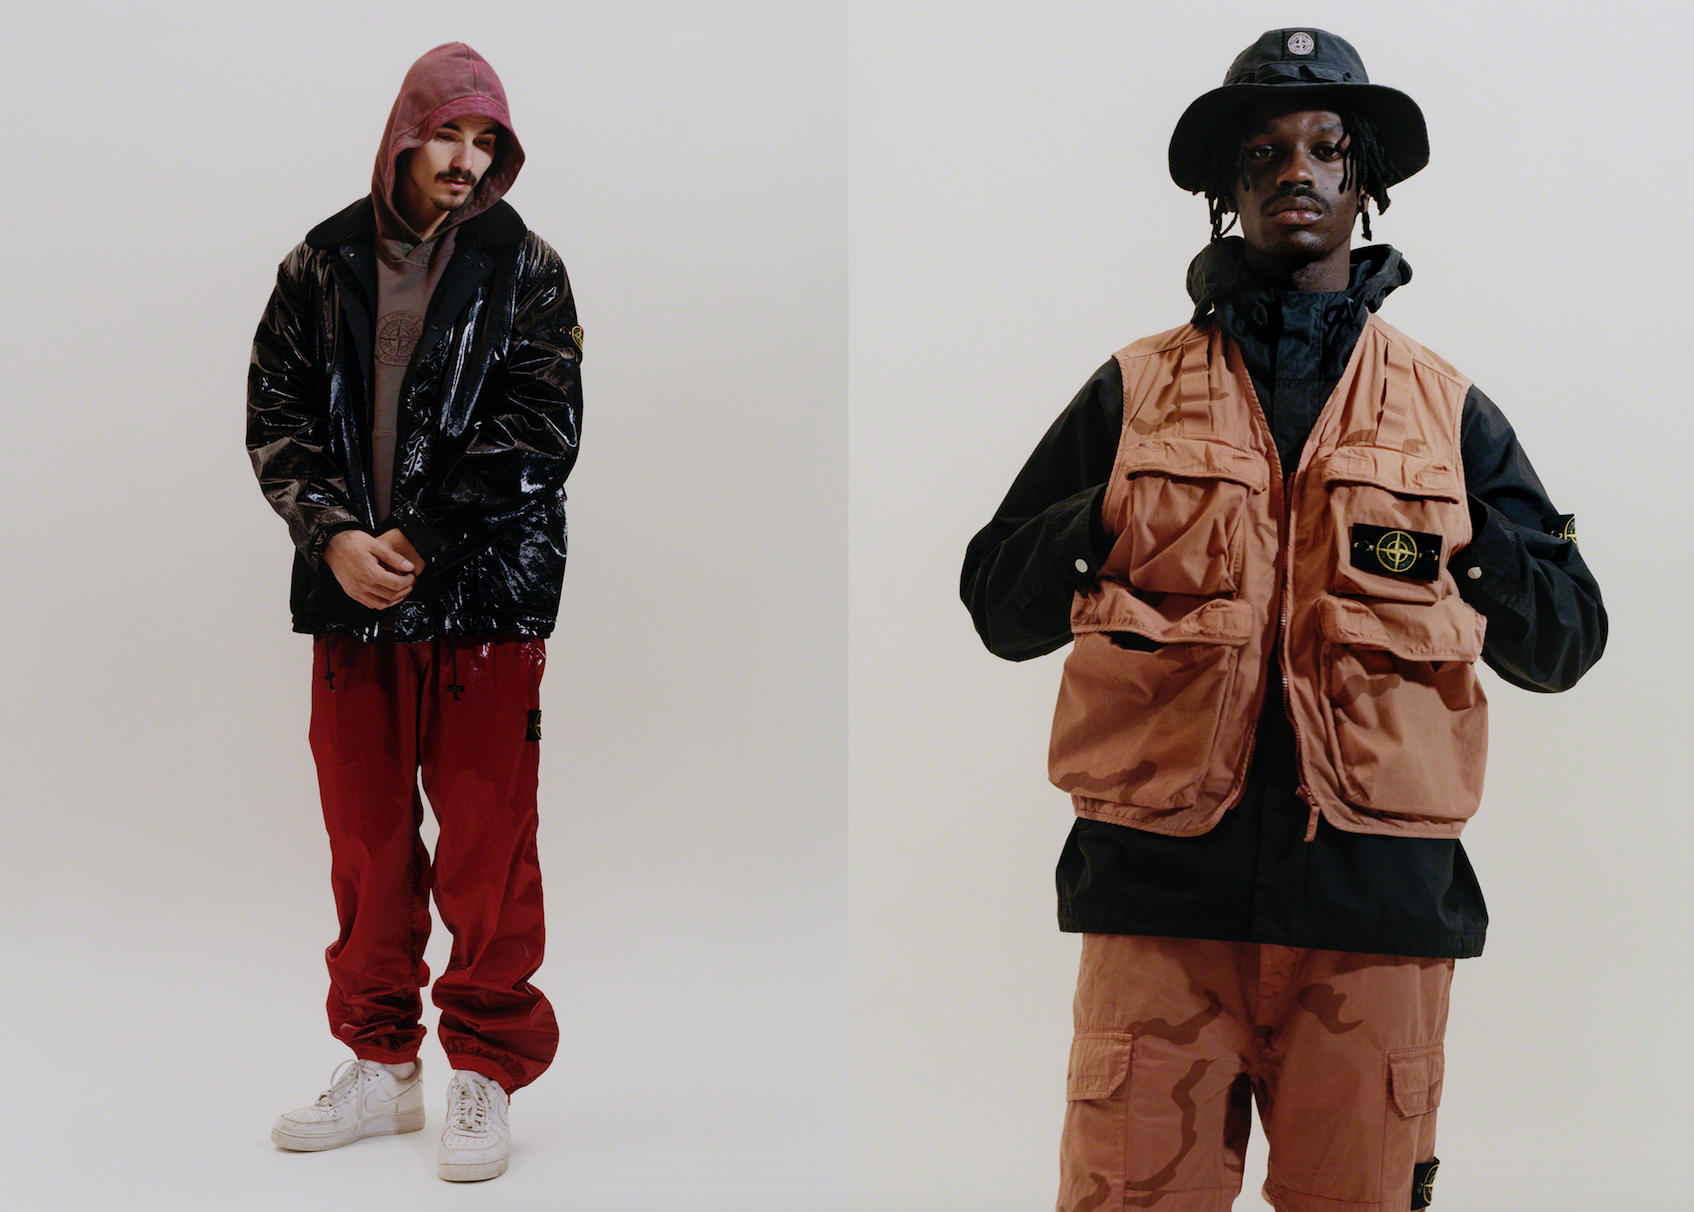 bc2c43a2 Supreme's latest collaboration is with Stone Island